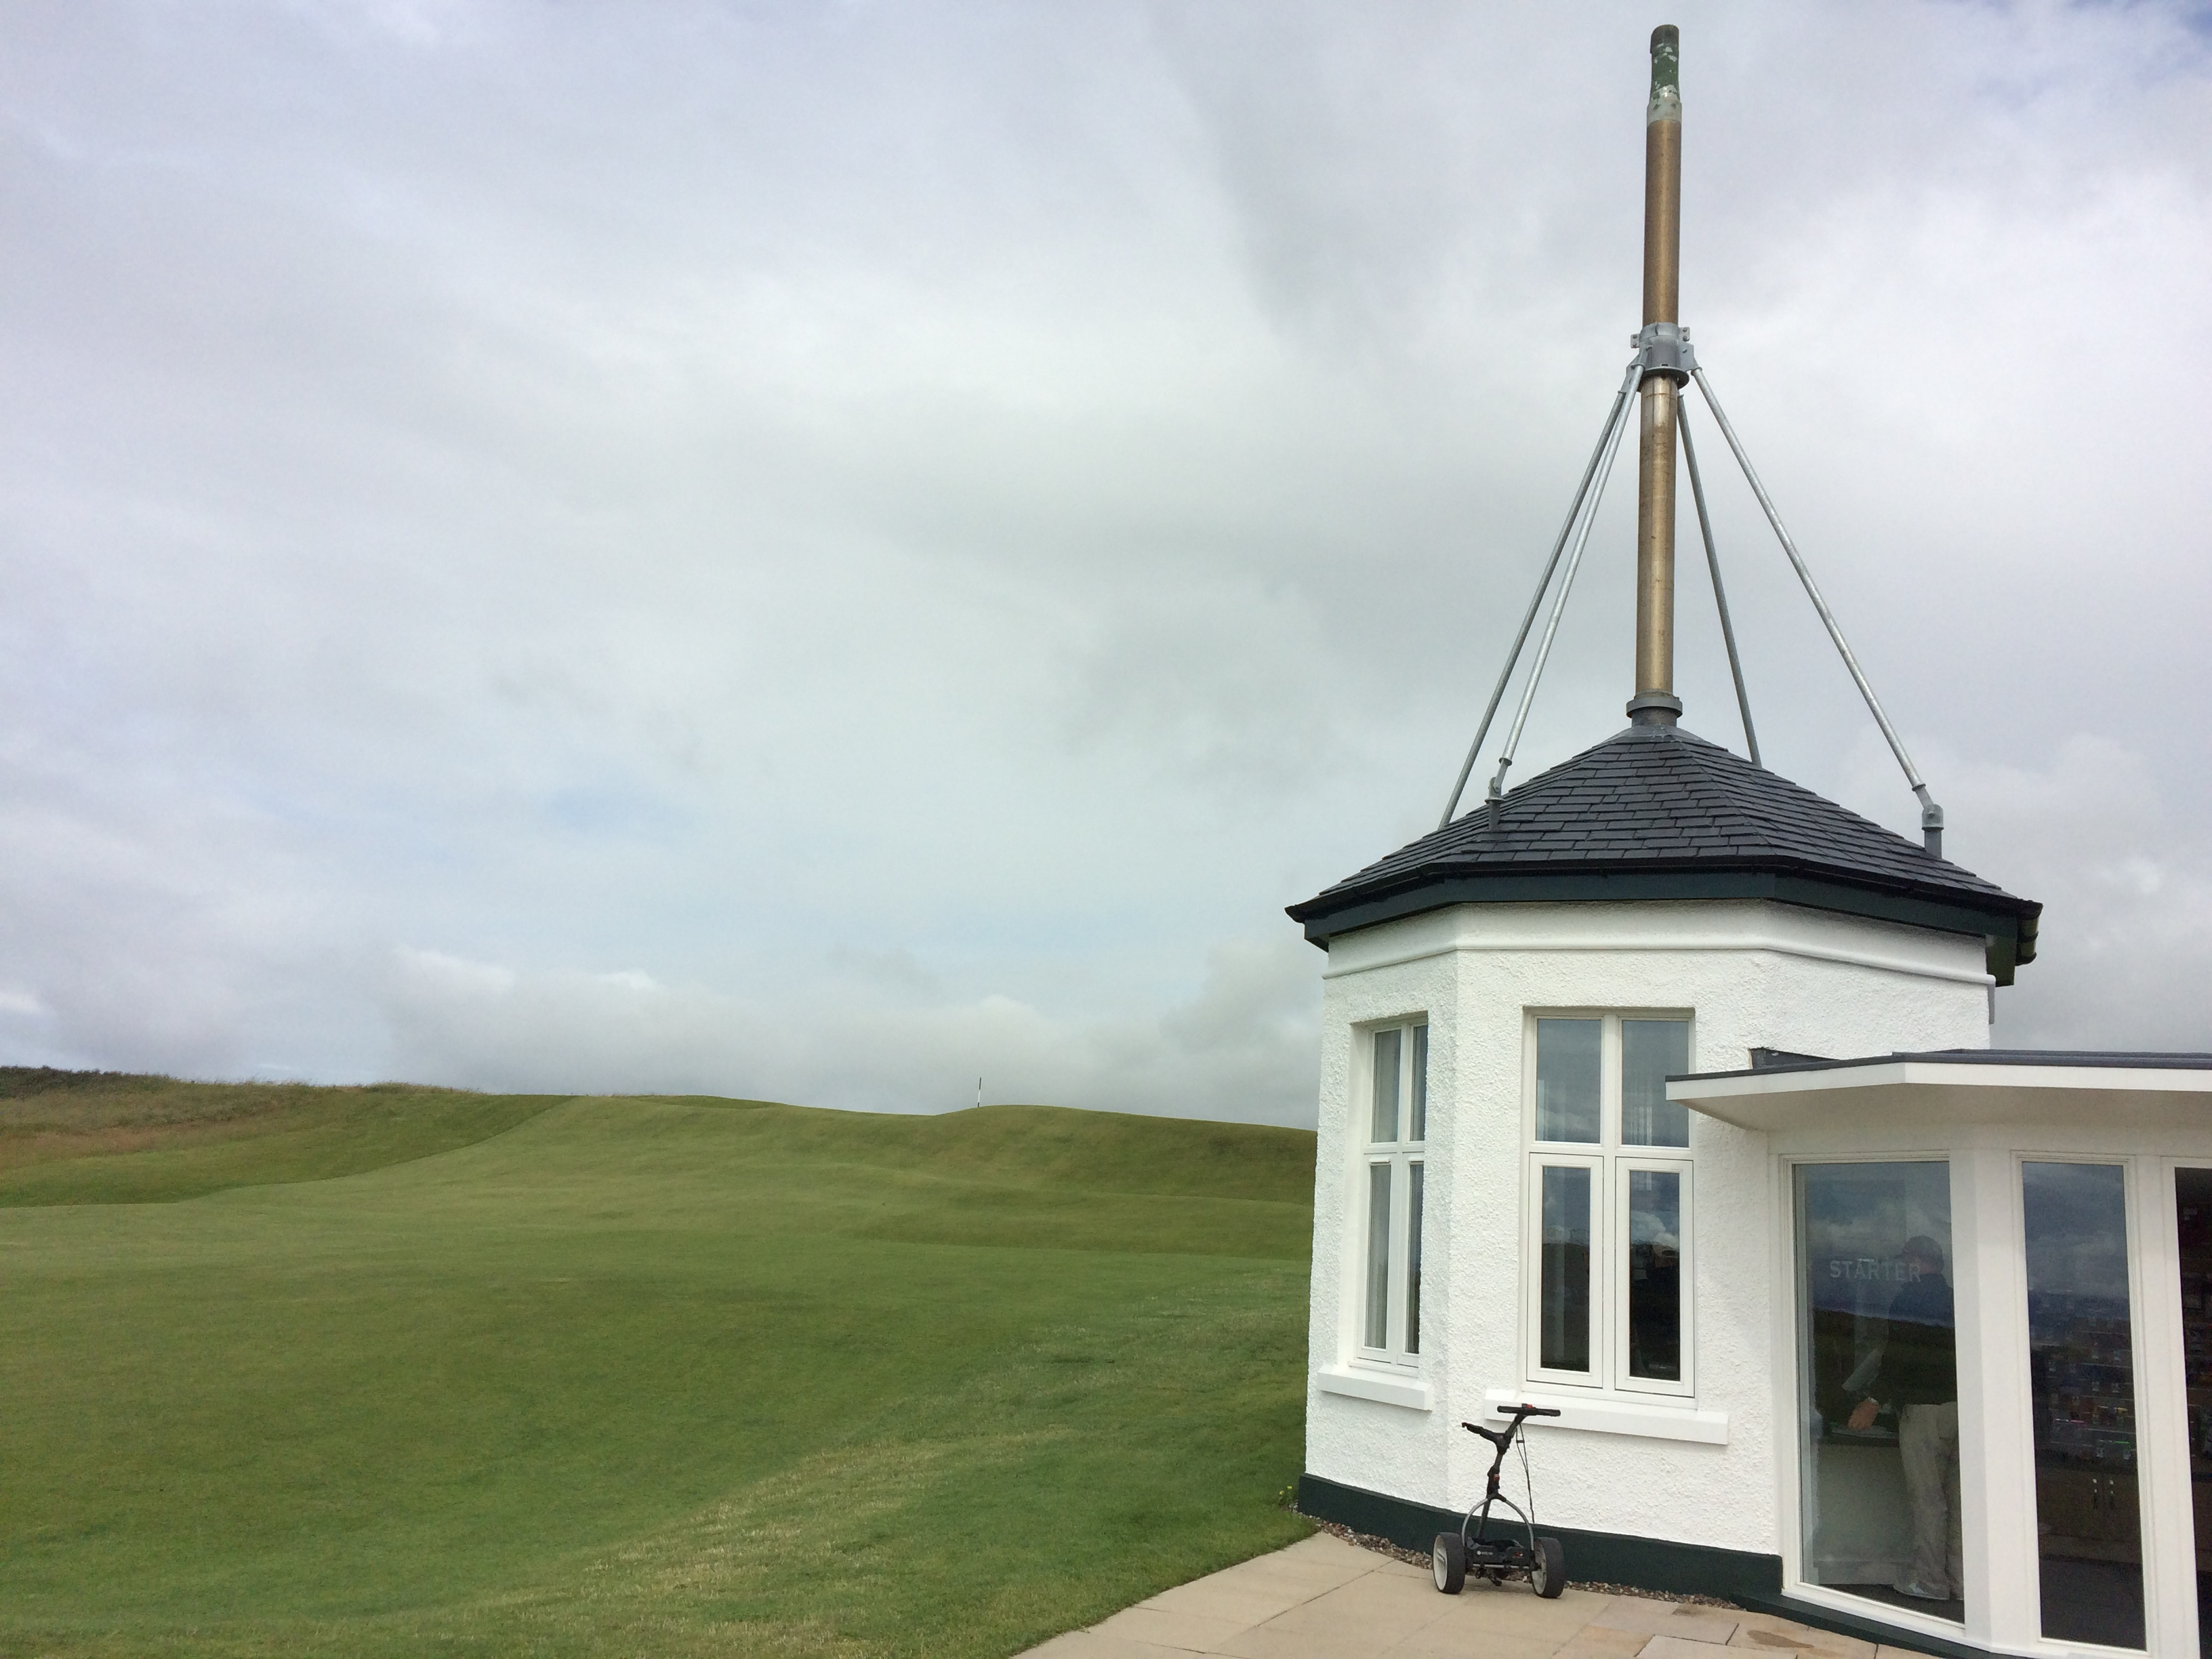 The periscope has been re-housed in in Elie's new starter's hut